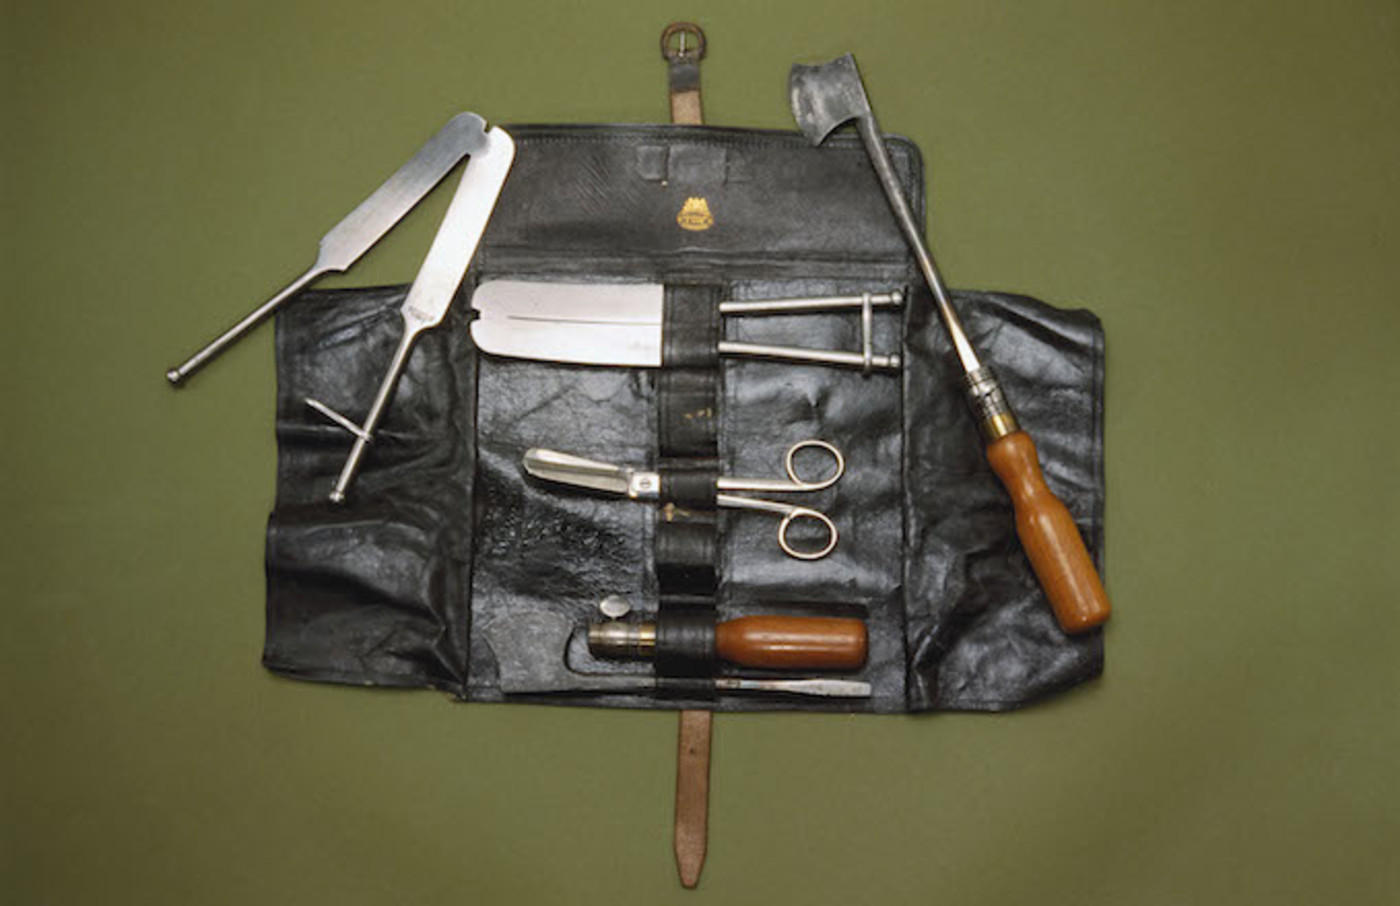 This castrating instrument set was manufactured by Arnold and Sons, London.